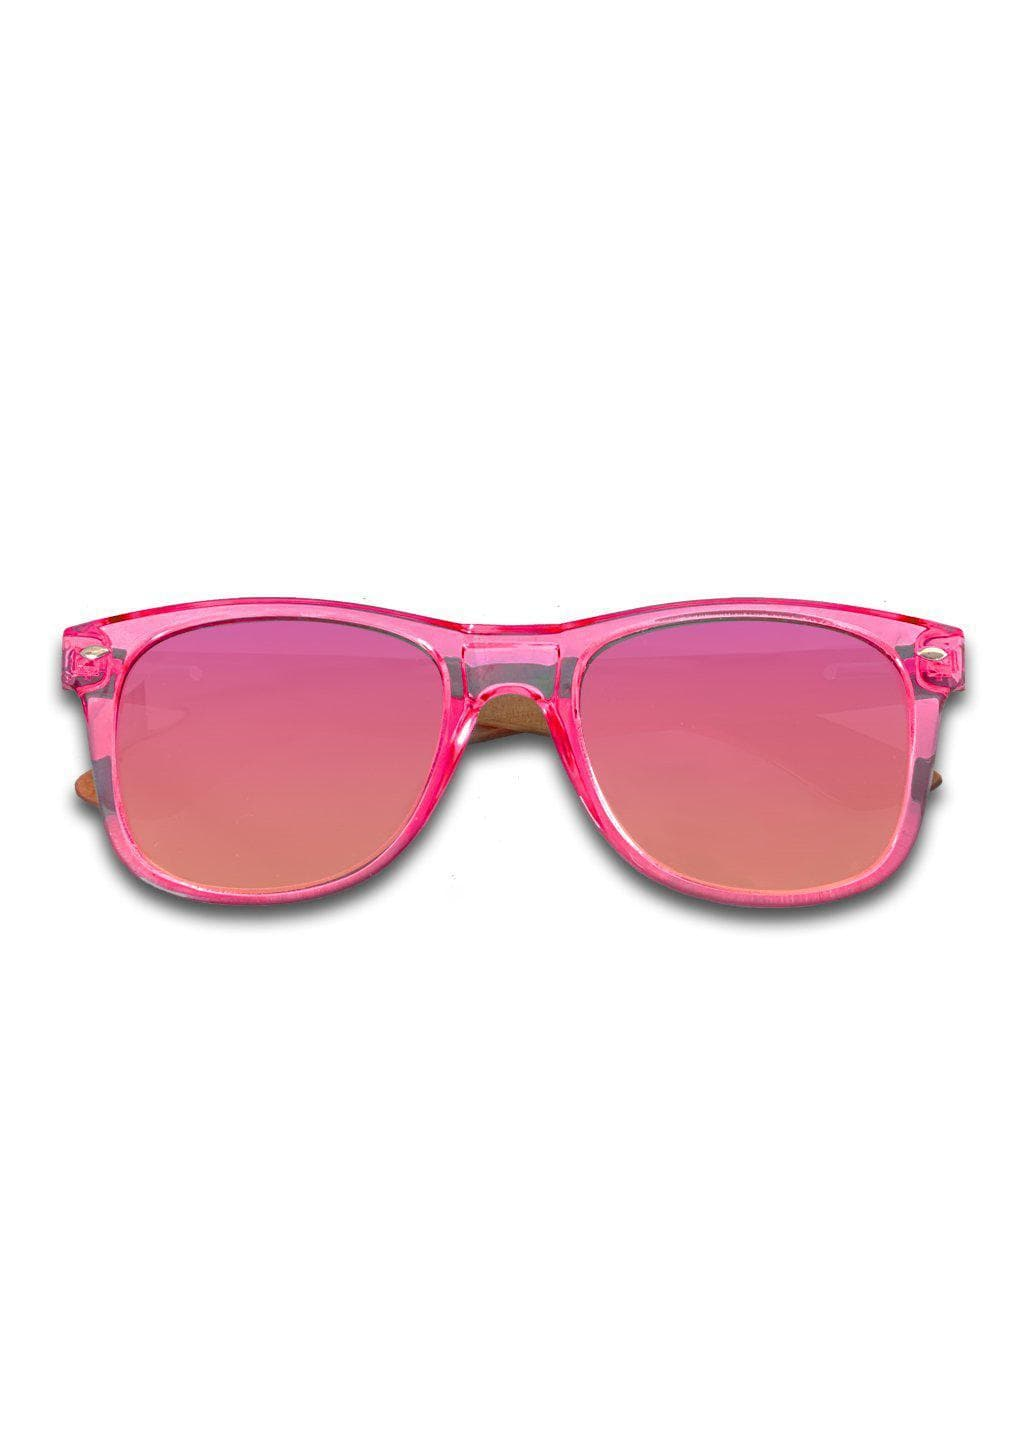 Eyewood Wayfarer - Coral - Nice wayfarers with pink frame and pink lenses.